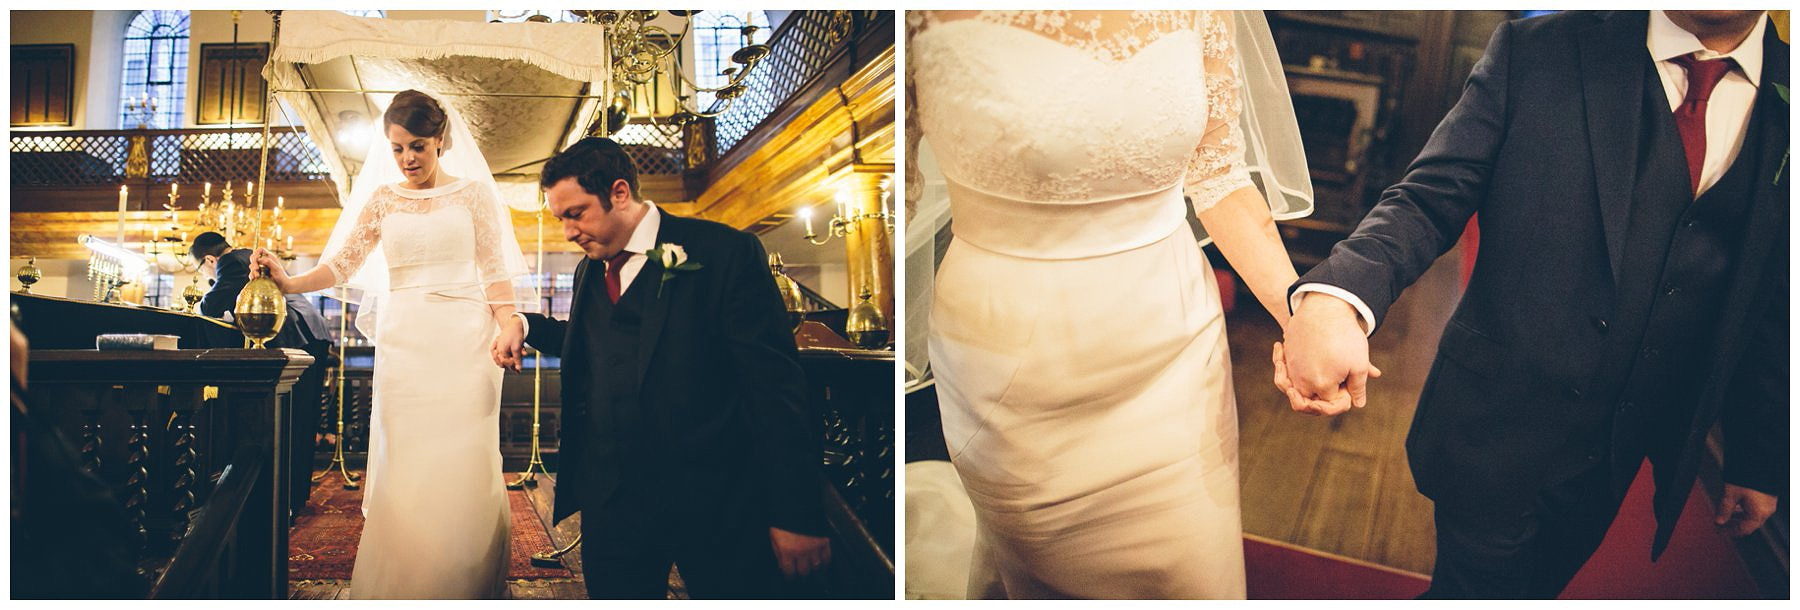 Bevis_Marks_Synagogue_Wedding_Photography_0064